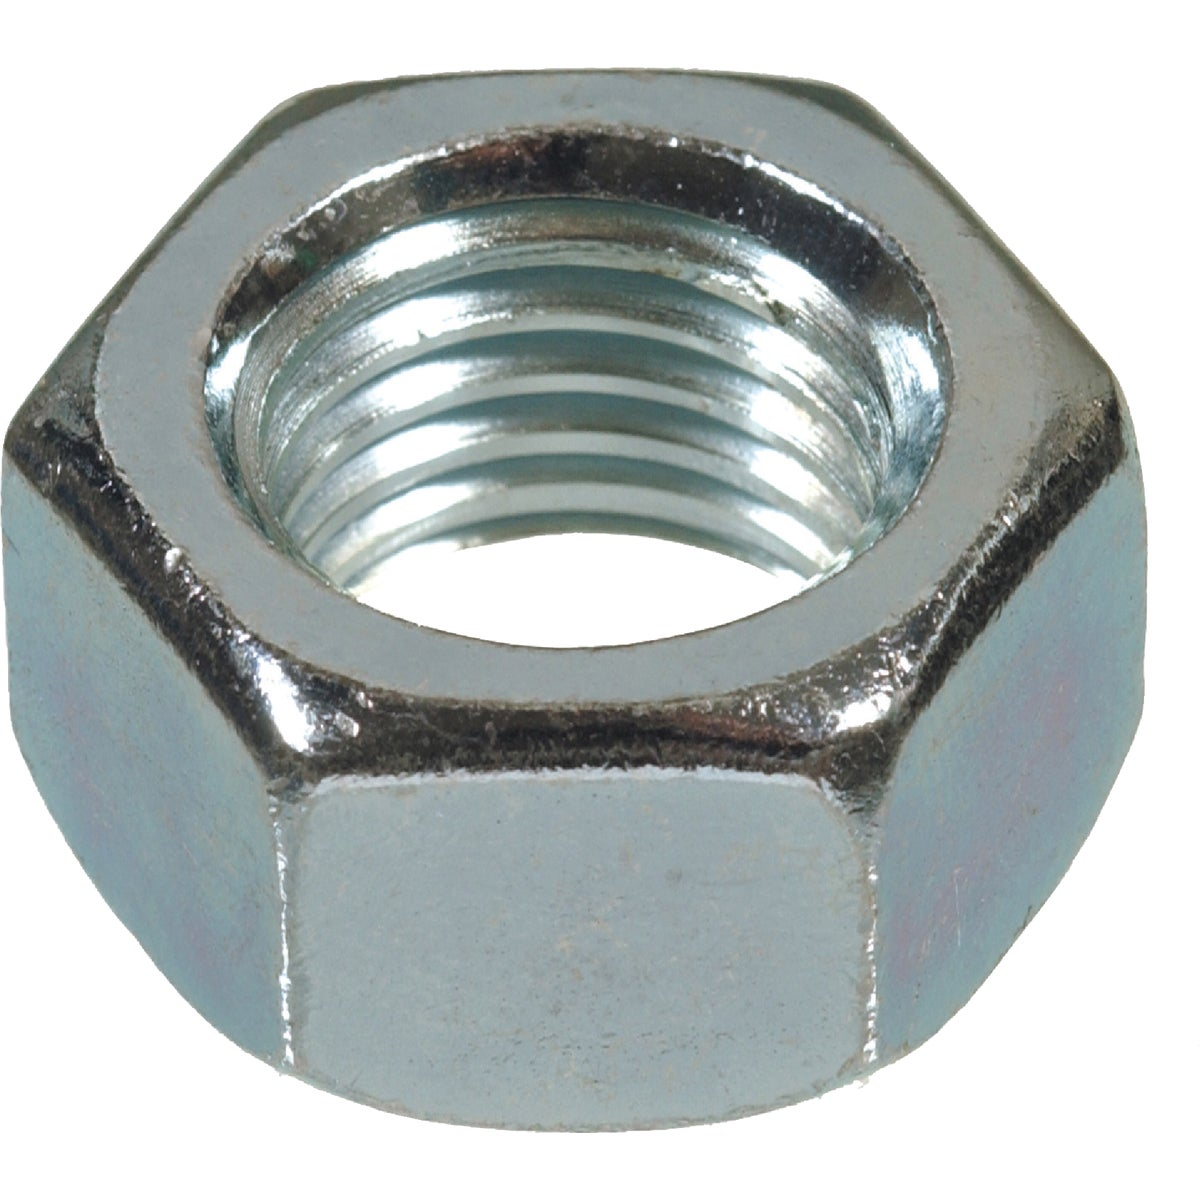 5/16-18 MACHNE SCREW NUT